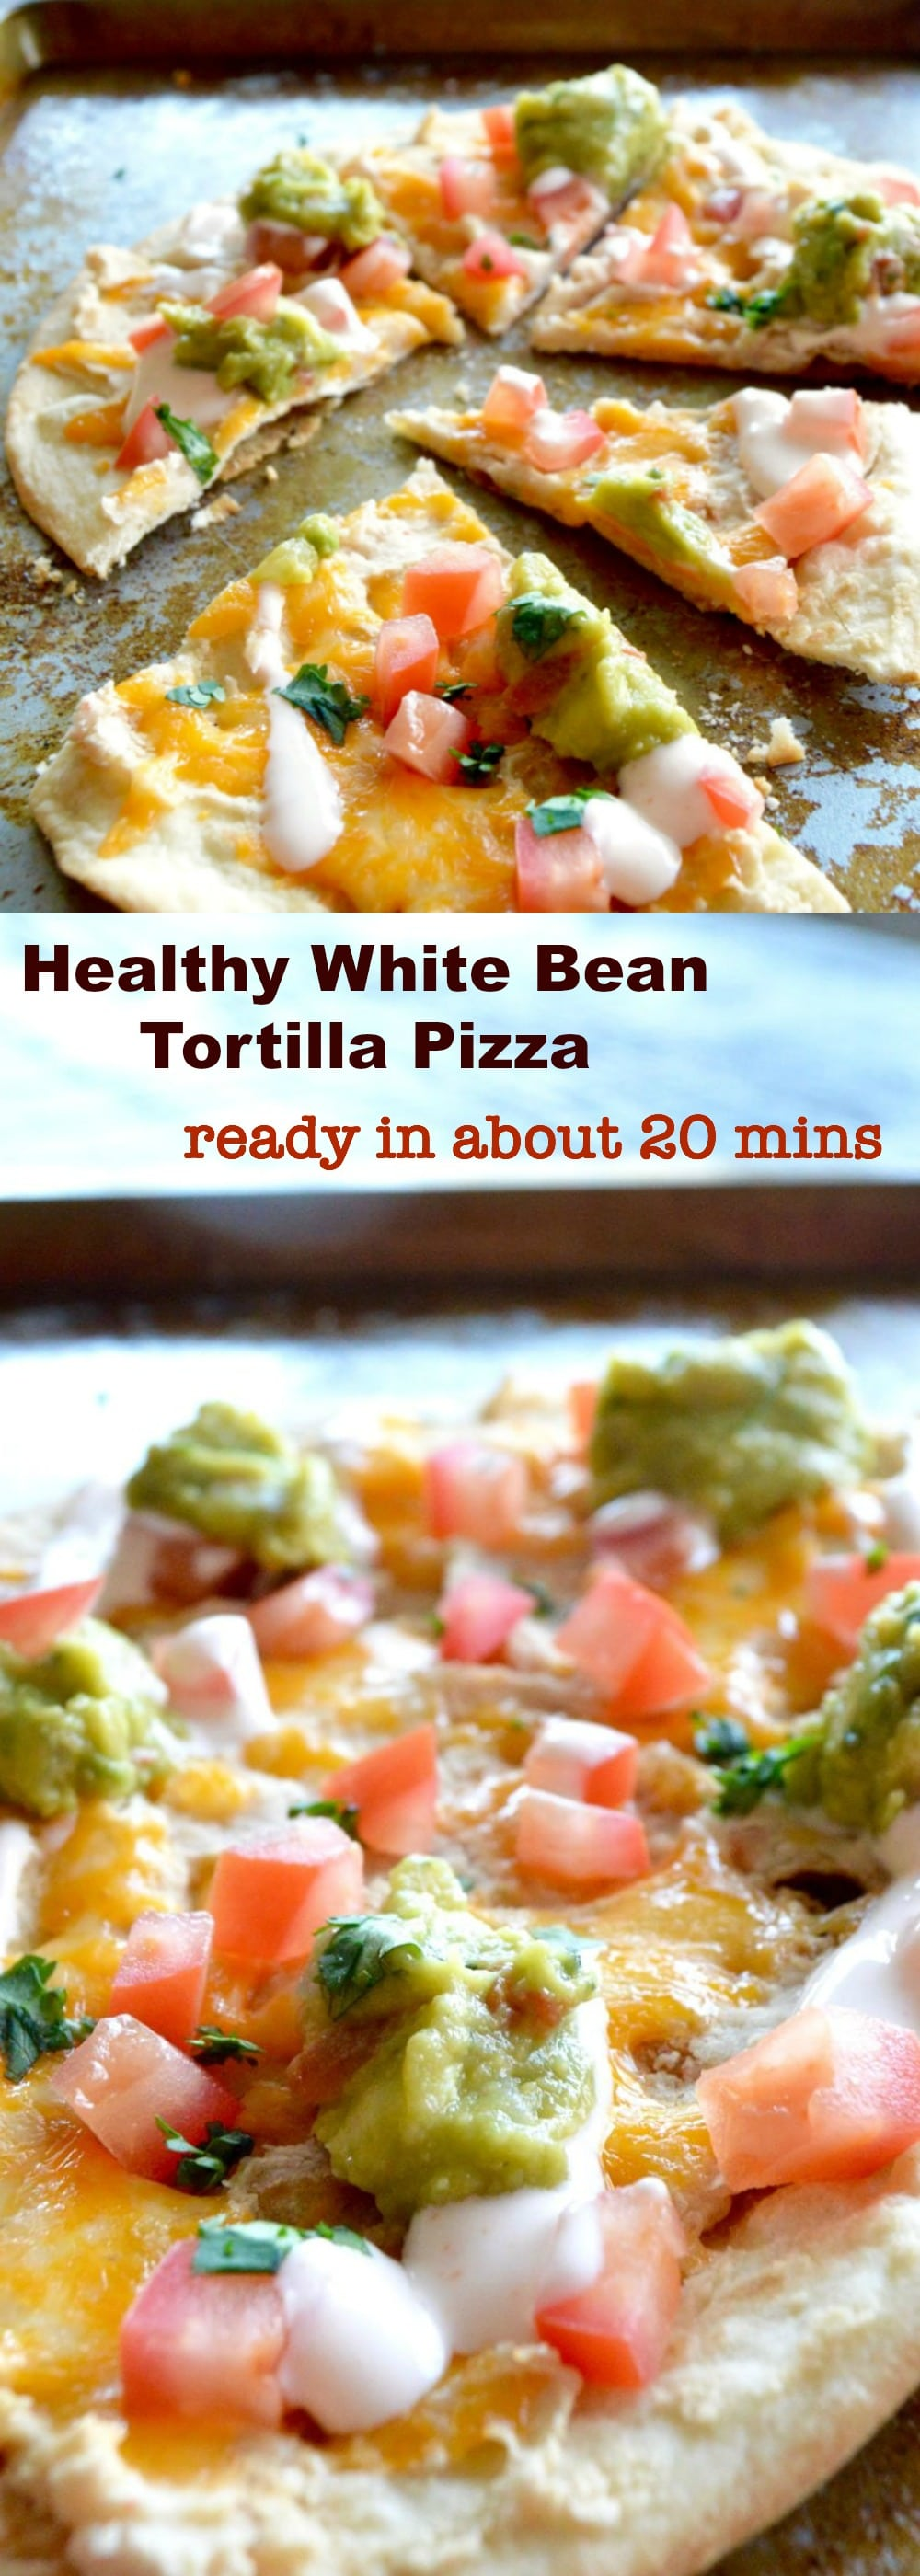 Appetizer, Pizza, A healthier appetizer option that you can make in less than 30 minutes.  Crispy tortilla crust, topped with smooth beans, fresh guacamole, cheese and tomatoes!